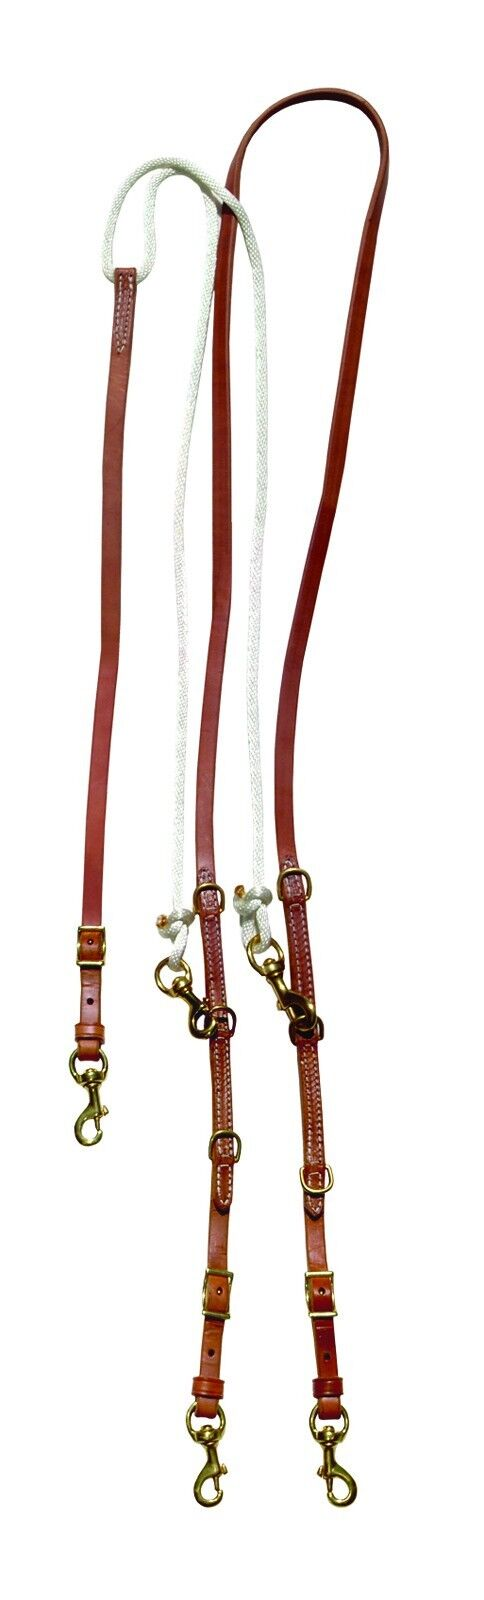 German Martingale with Barrel Style Reins Amish Made in Ohio H846